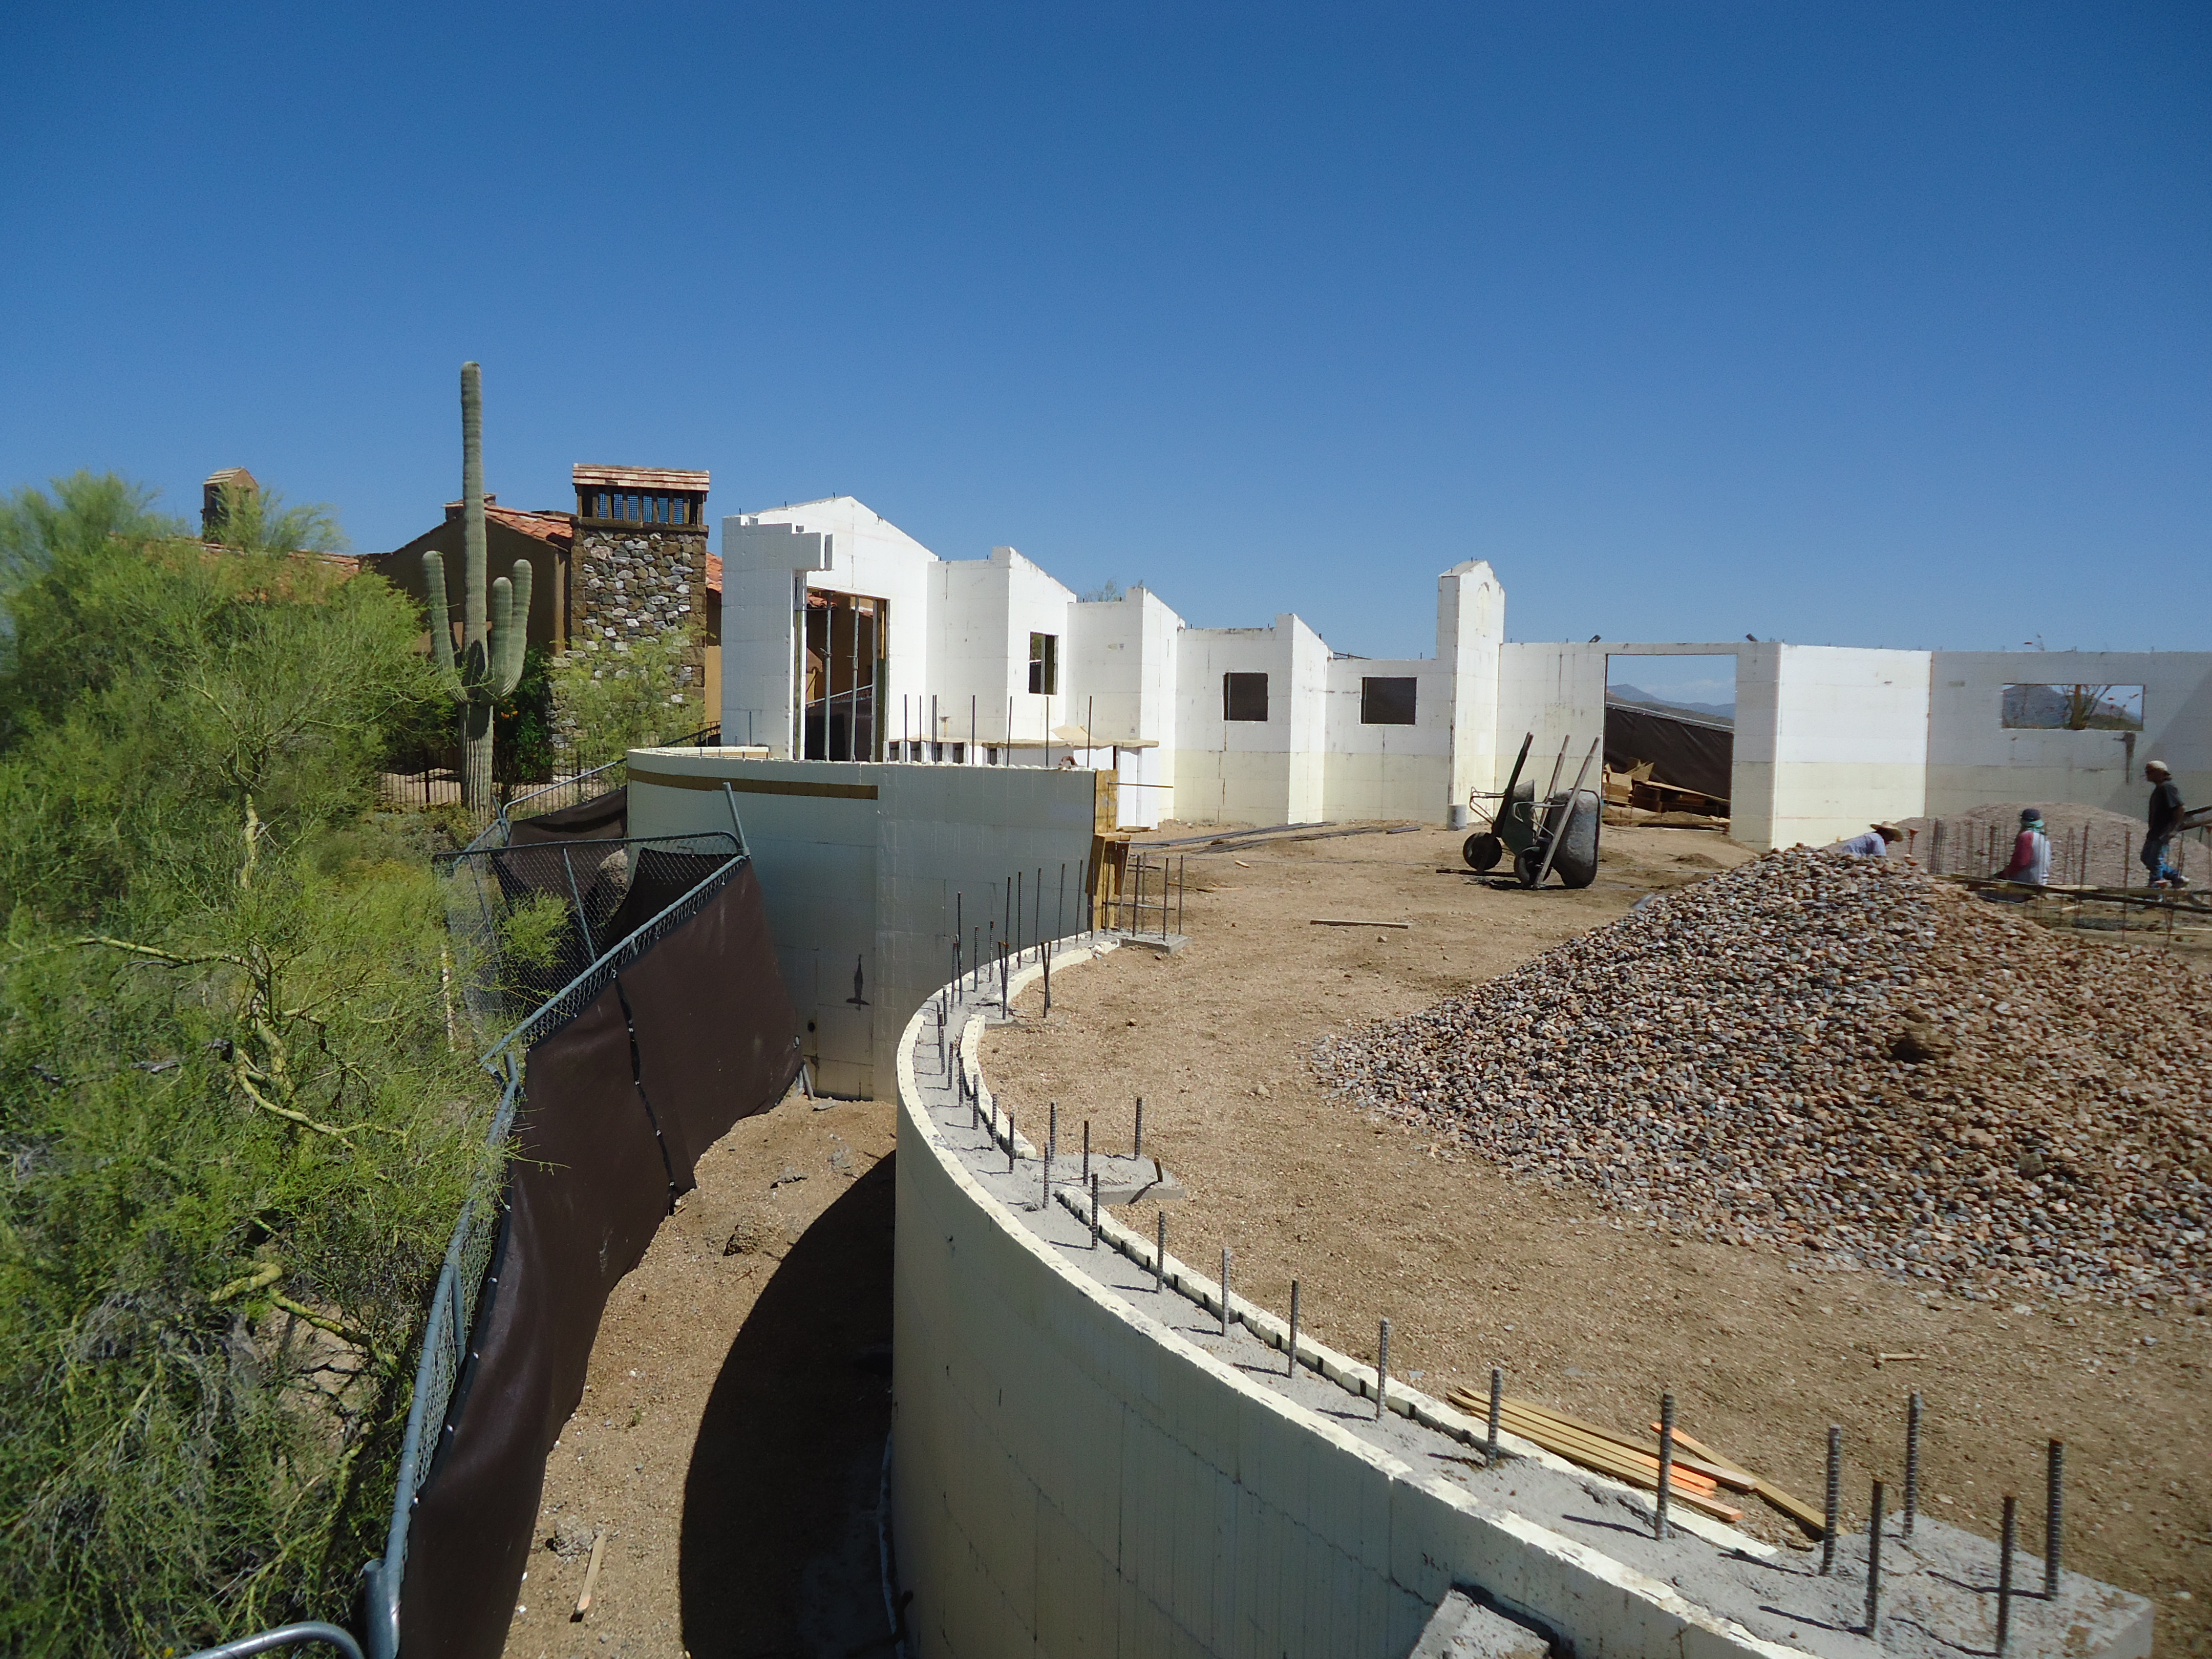 ICF Specialist on ica building plans, straw bale building plans, masonry building plans, concrete building plans, hospital building plans, log building plans, rammed earth building plans, wood building plans, sip building plans, timber frame building plans, aac building plans,